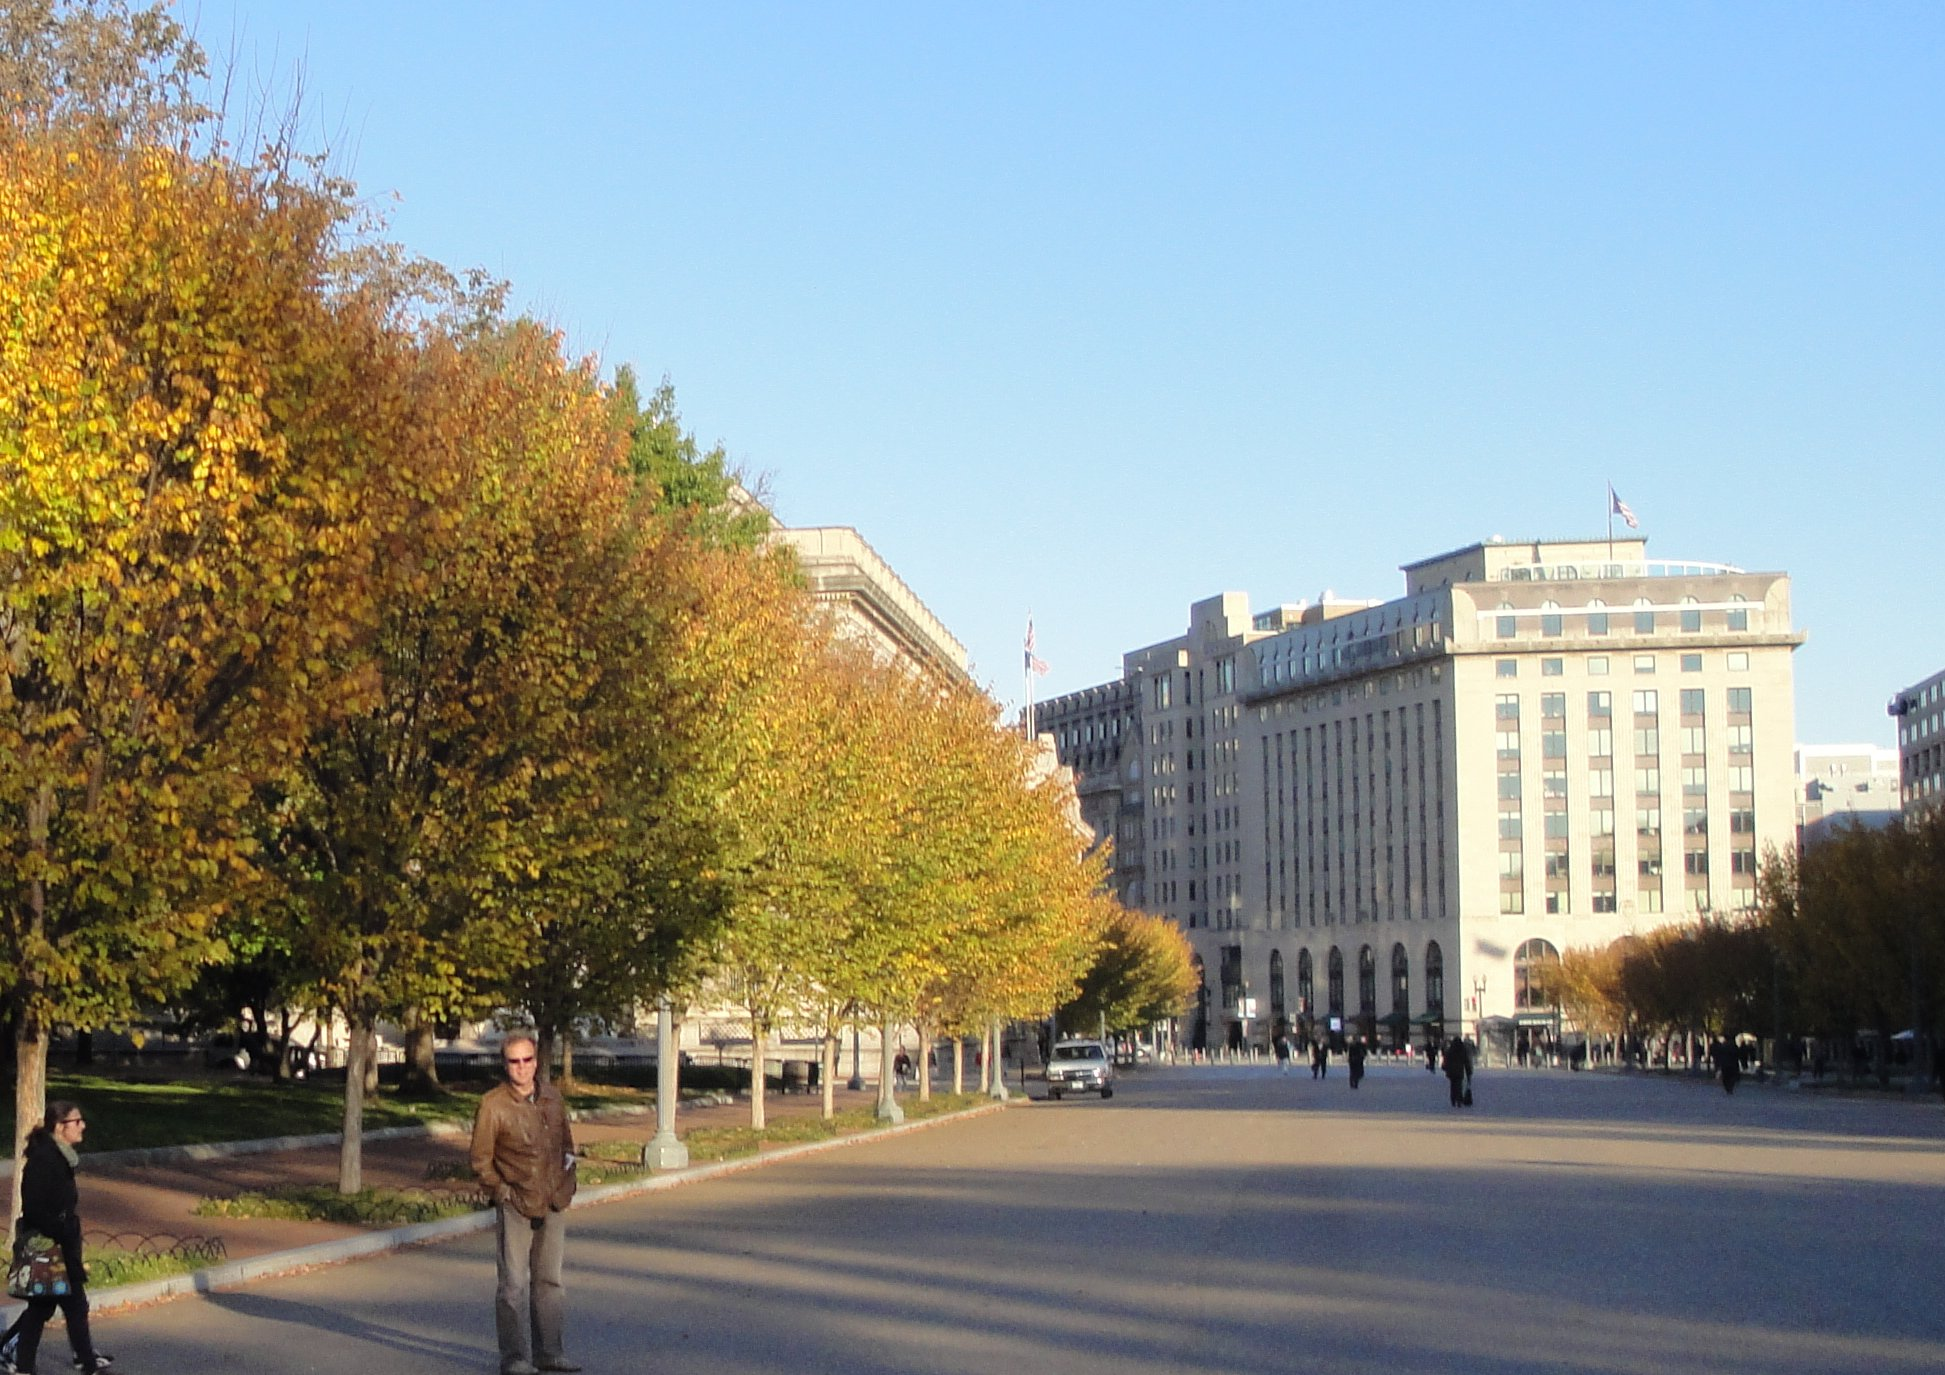 American elms on Pennsylvania Ave across from the Whithouse. These are the new Princeton elms, which are resistant to the deadly Dutch elm disease